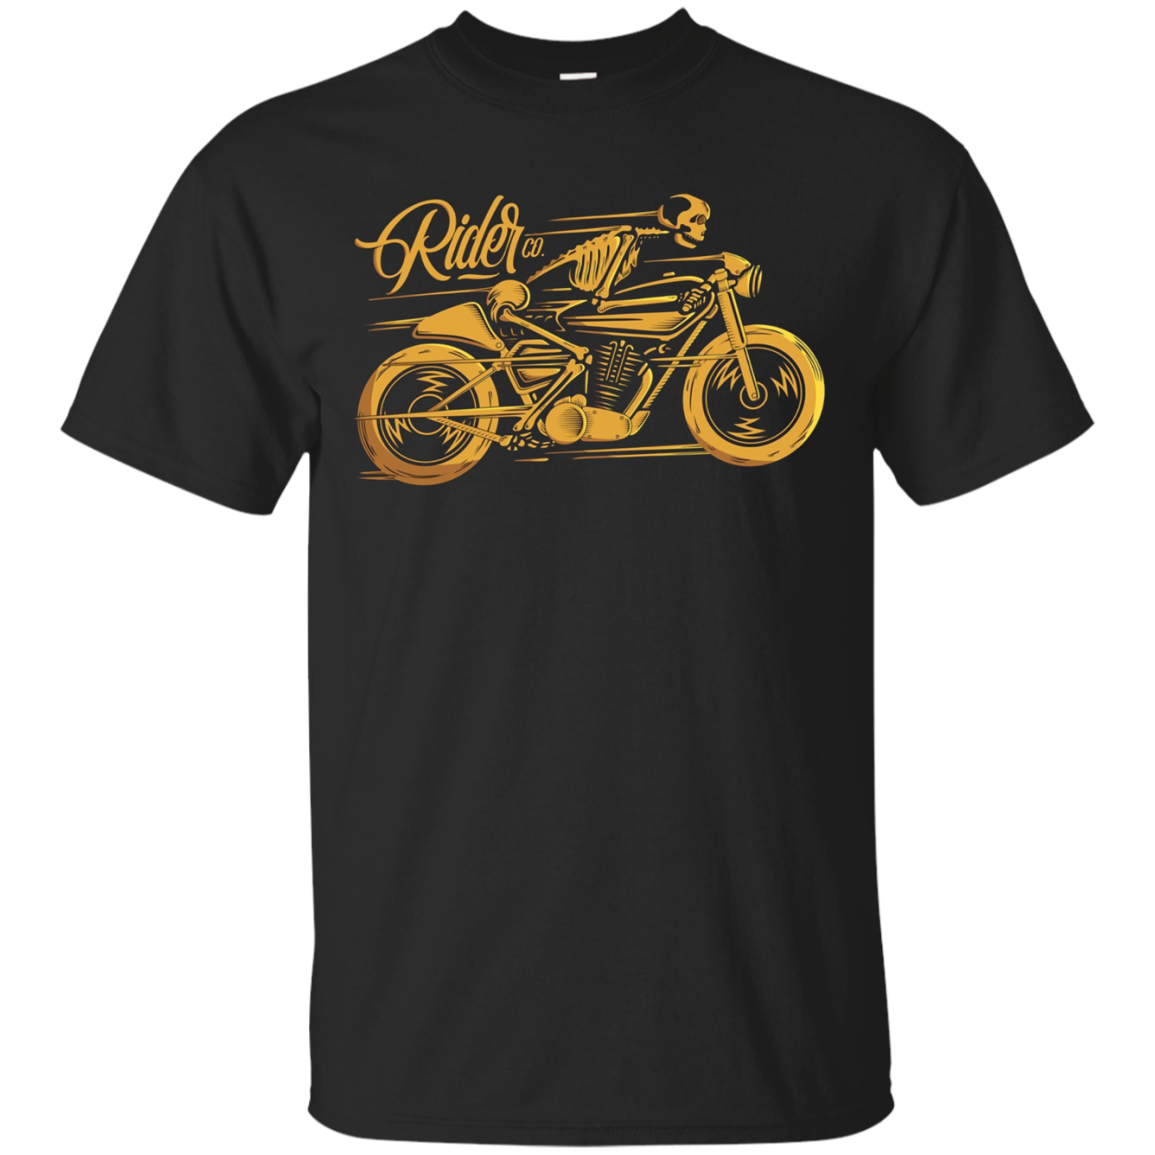 Cafe Racer Tshirt - Ghost Classic Rider - Vintage Motorcycle